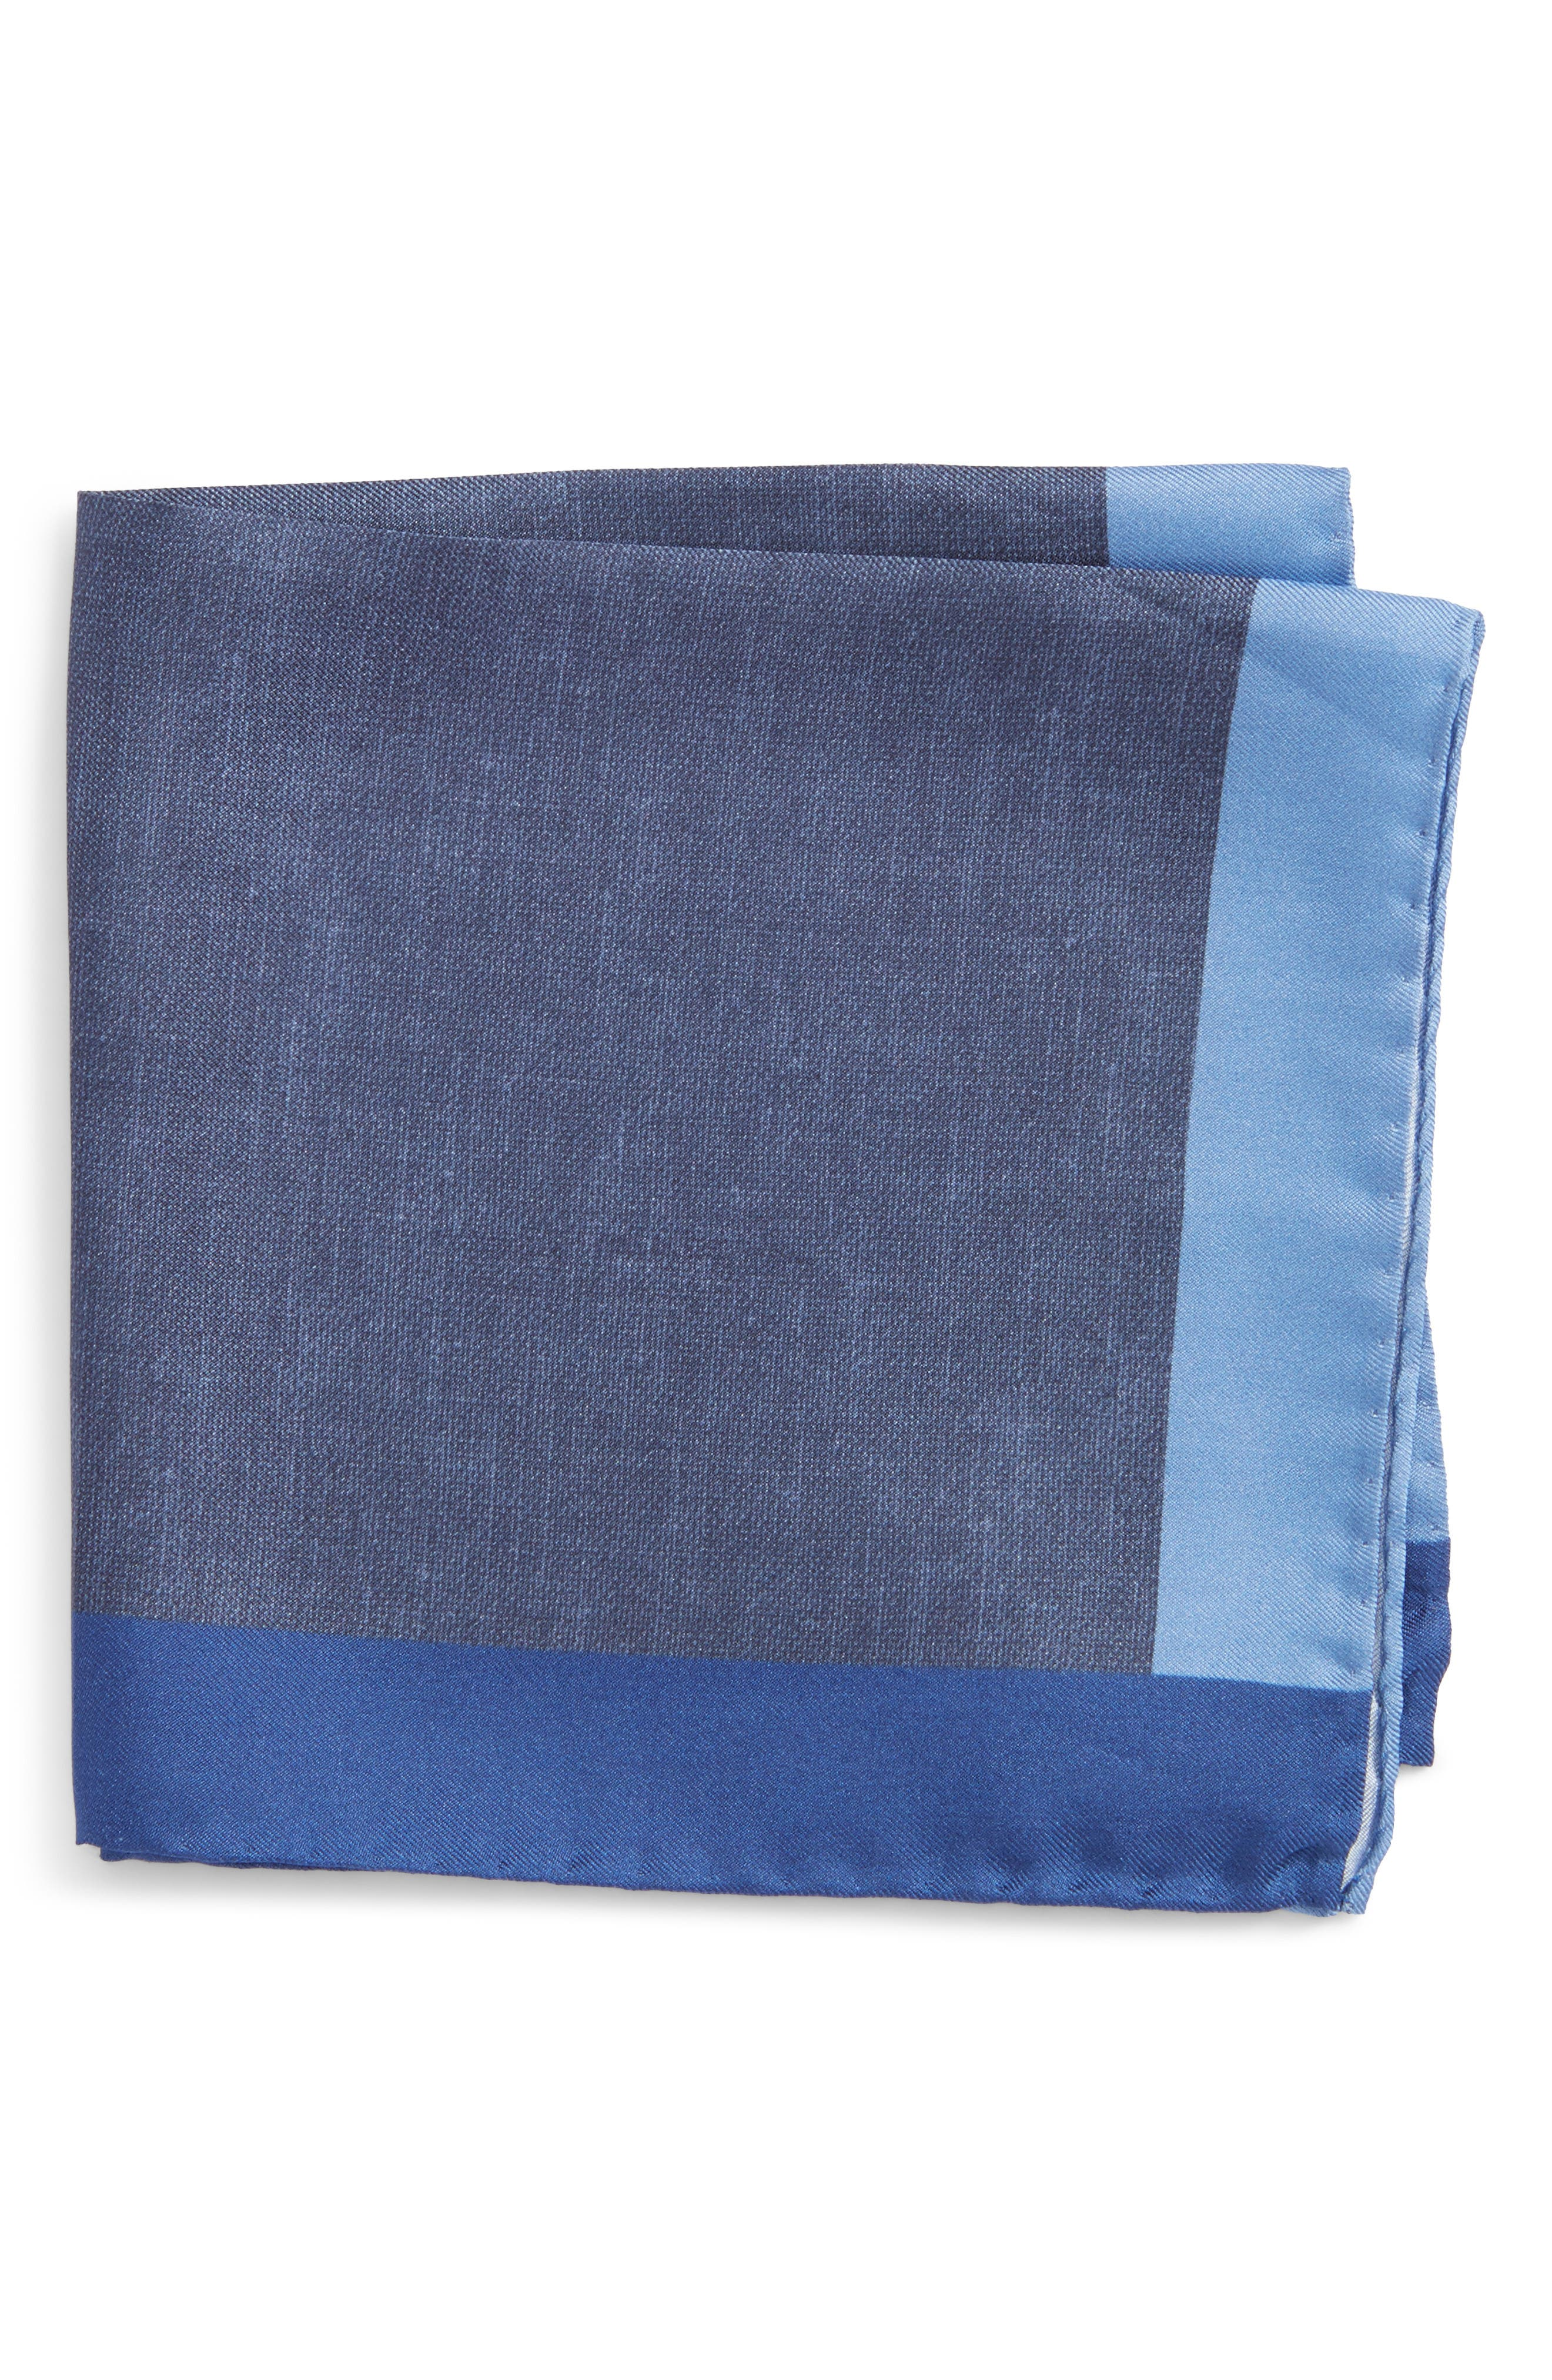 Nordstrom x BOSS Exclusive Silk Pocket Square,                             Main thumbnail 1, color,                             403